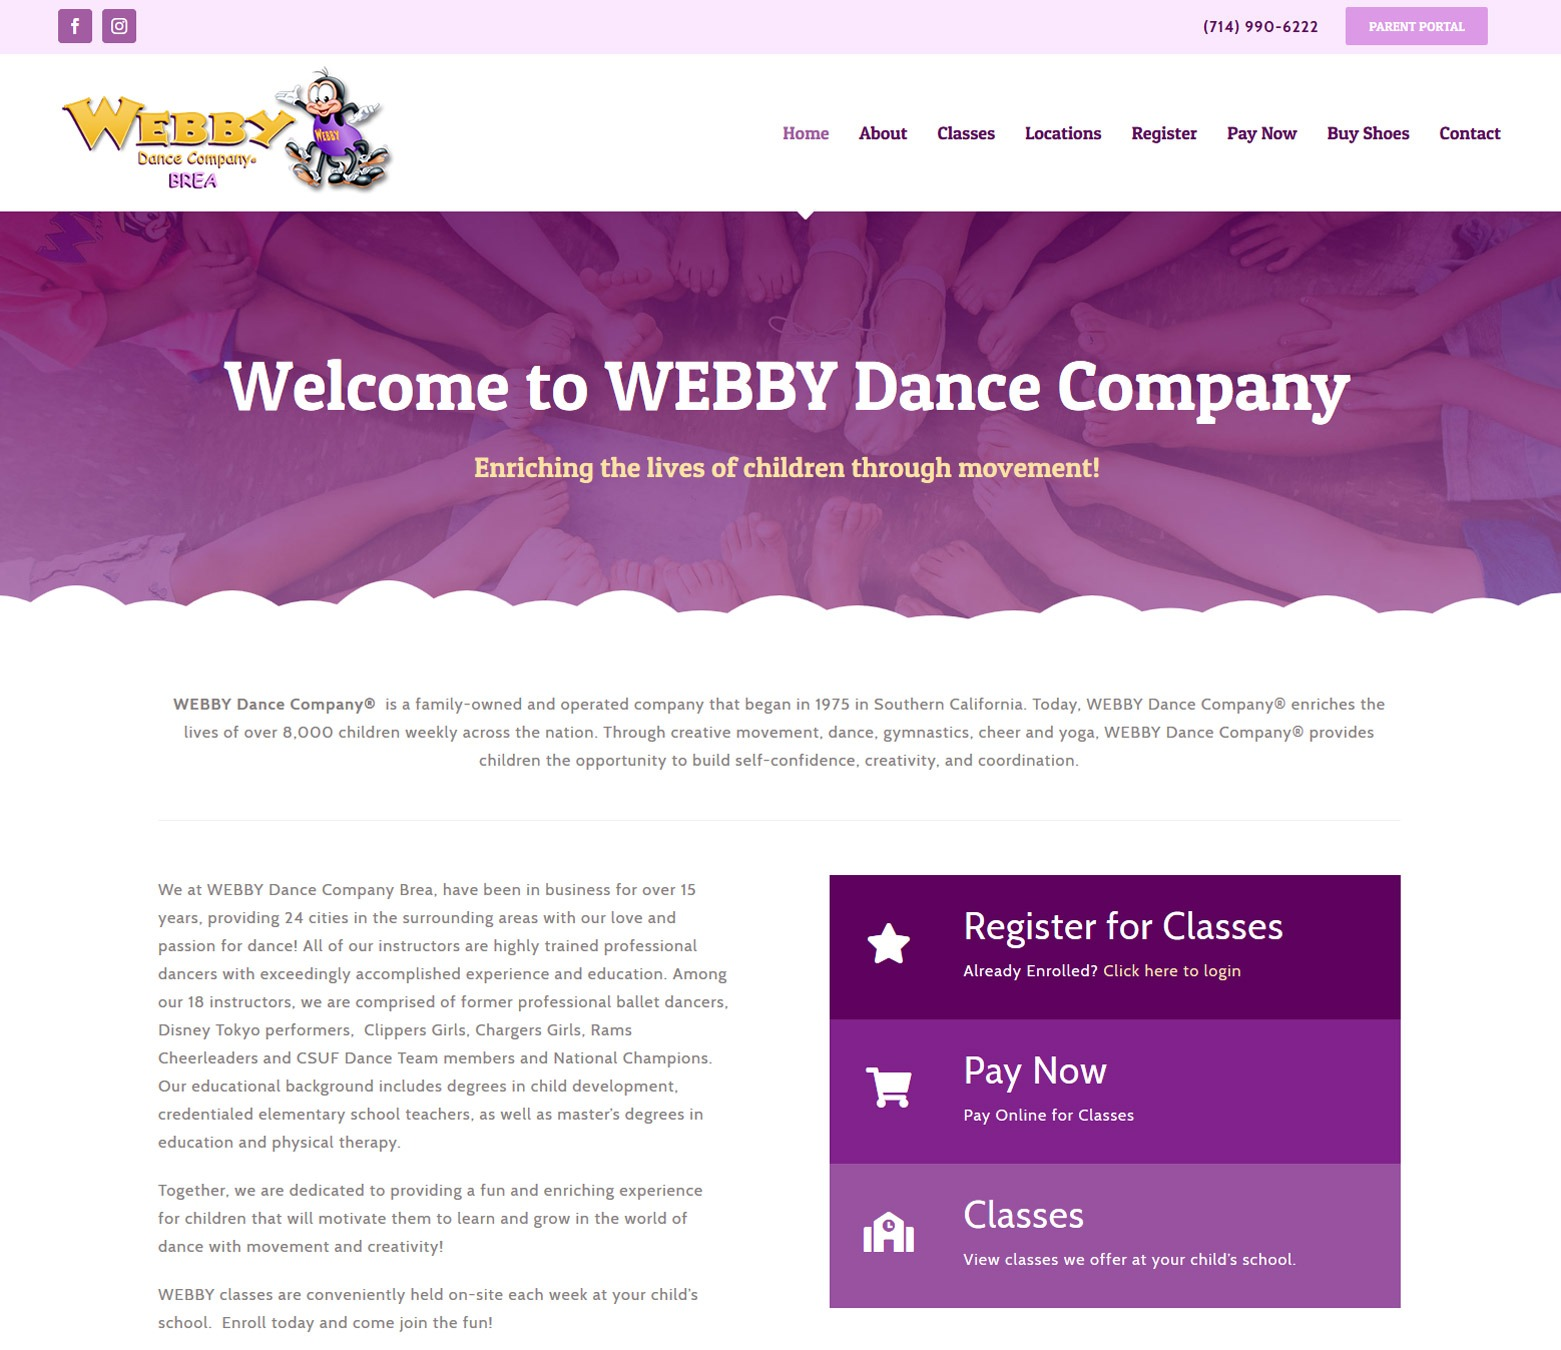 LA Angeles Dance Studio Web Design Company